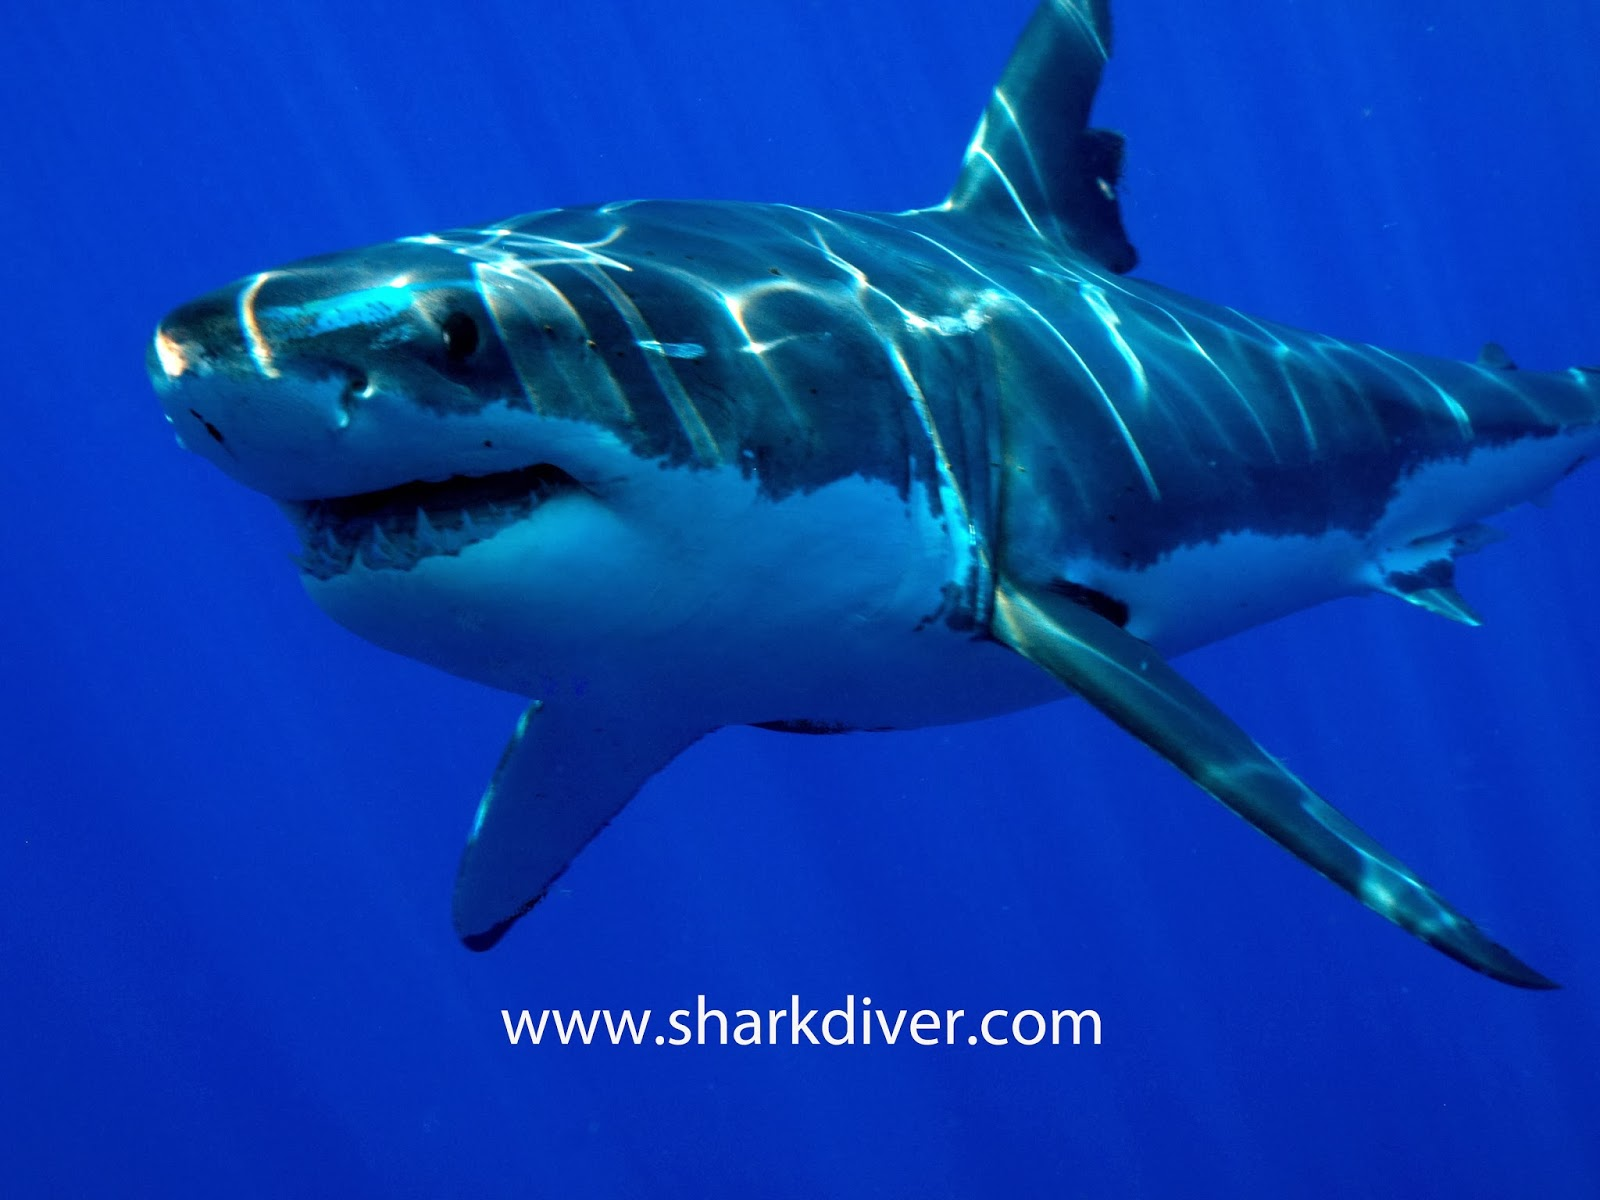 another catch and kill order for a great white shark sharkdiver another catch and kill order for a great white shark